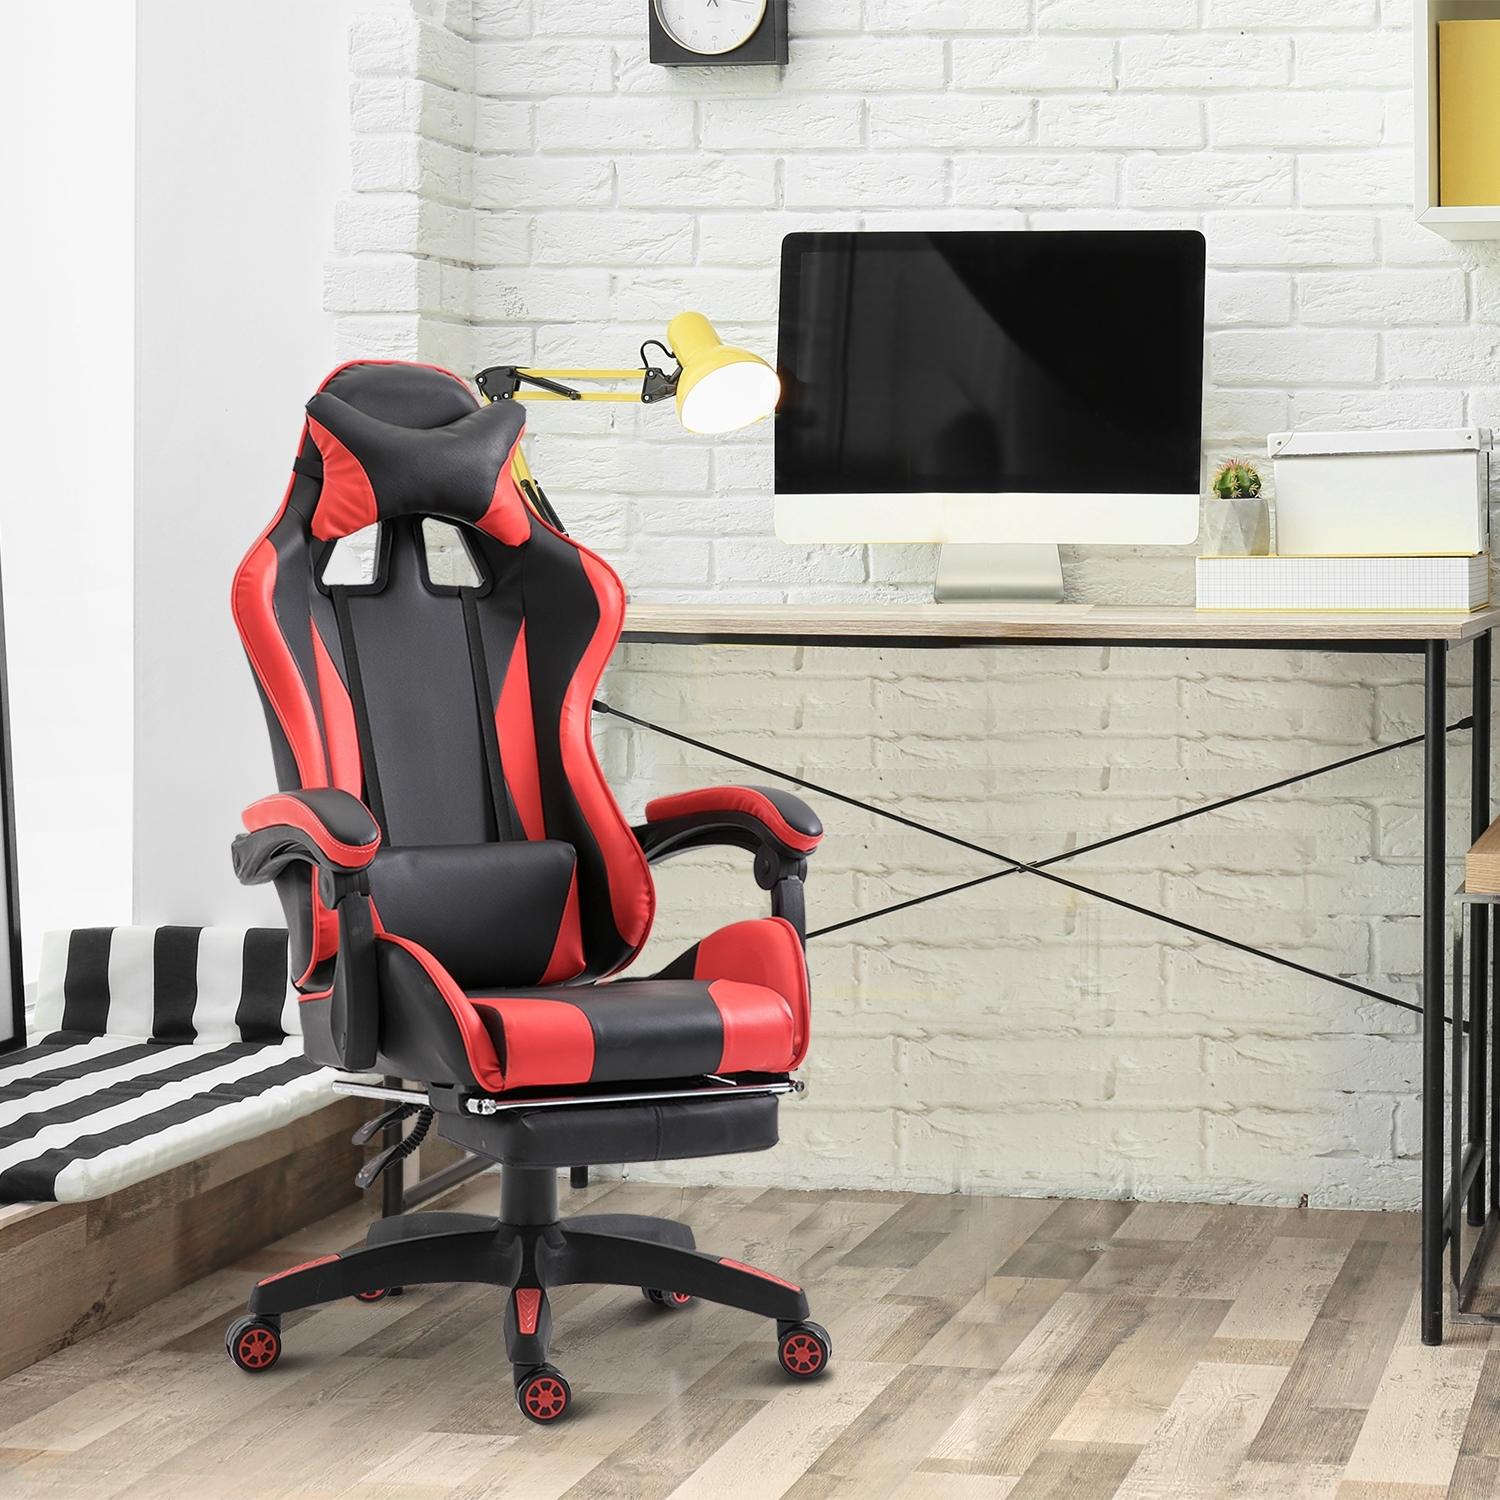 Image of €139,90 Vinsetto Fauteuil de Bureau Chaise Gamer Racing Sport Hauteur Réglable Inclinable Repose-Pied Coussins Similicuir Rouge Noir / Homcom 66 L x 60 127-134 H cm et Design Ergonomique Gaming 921-118 3662970029848